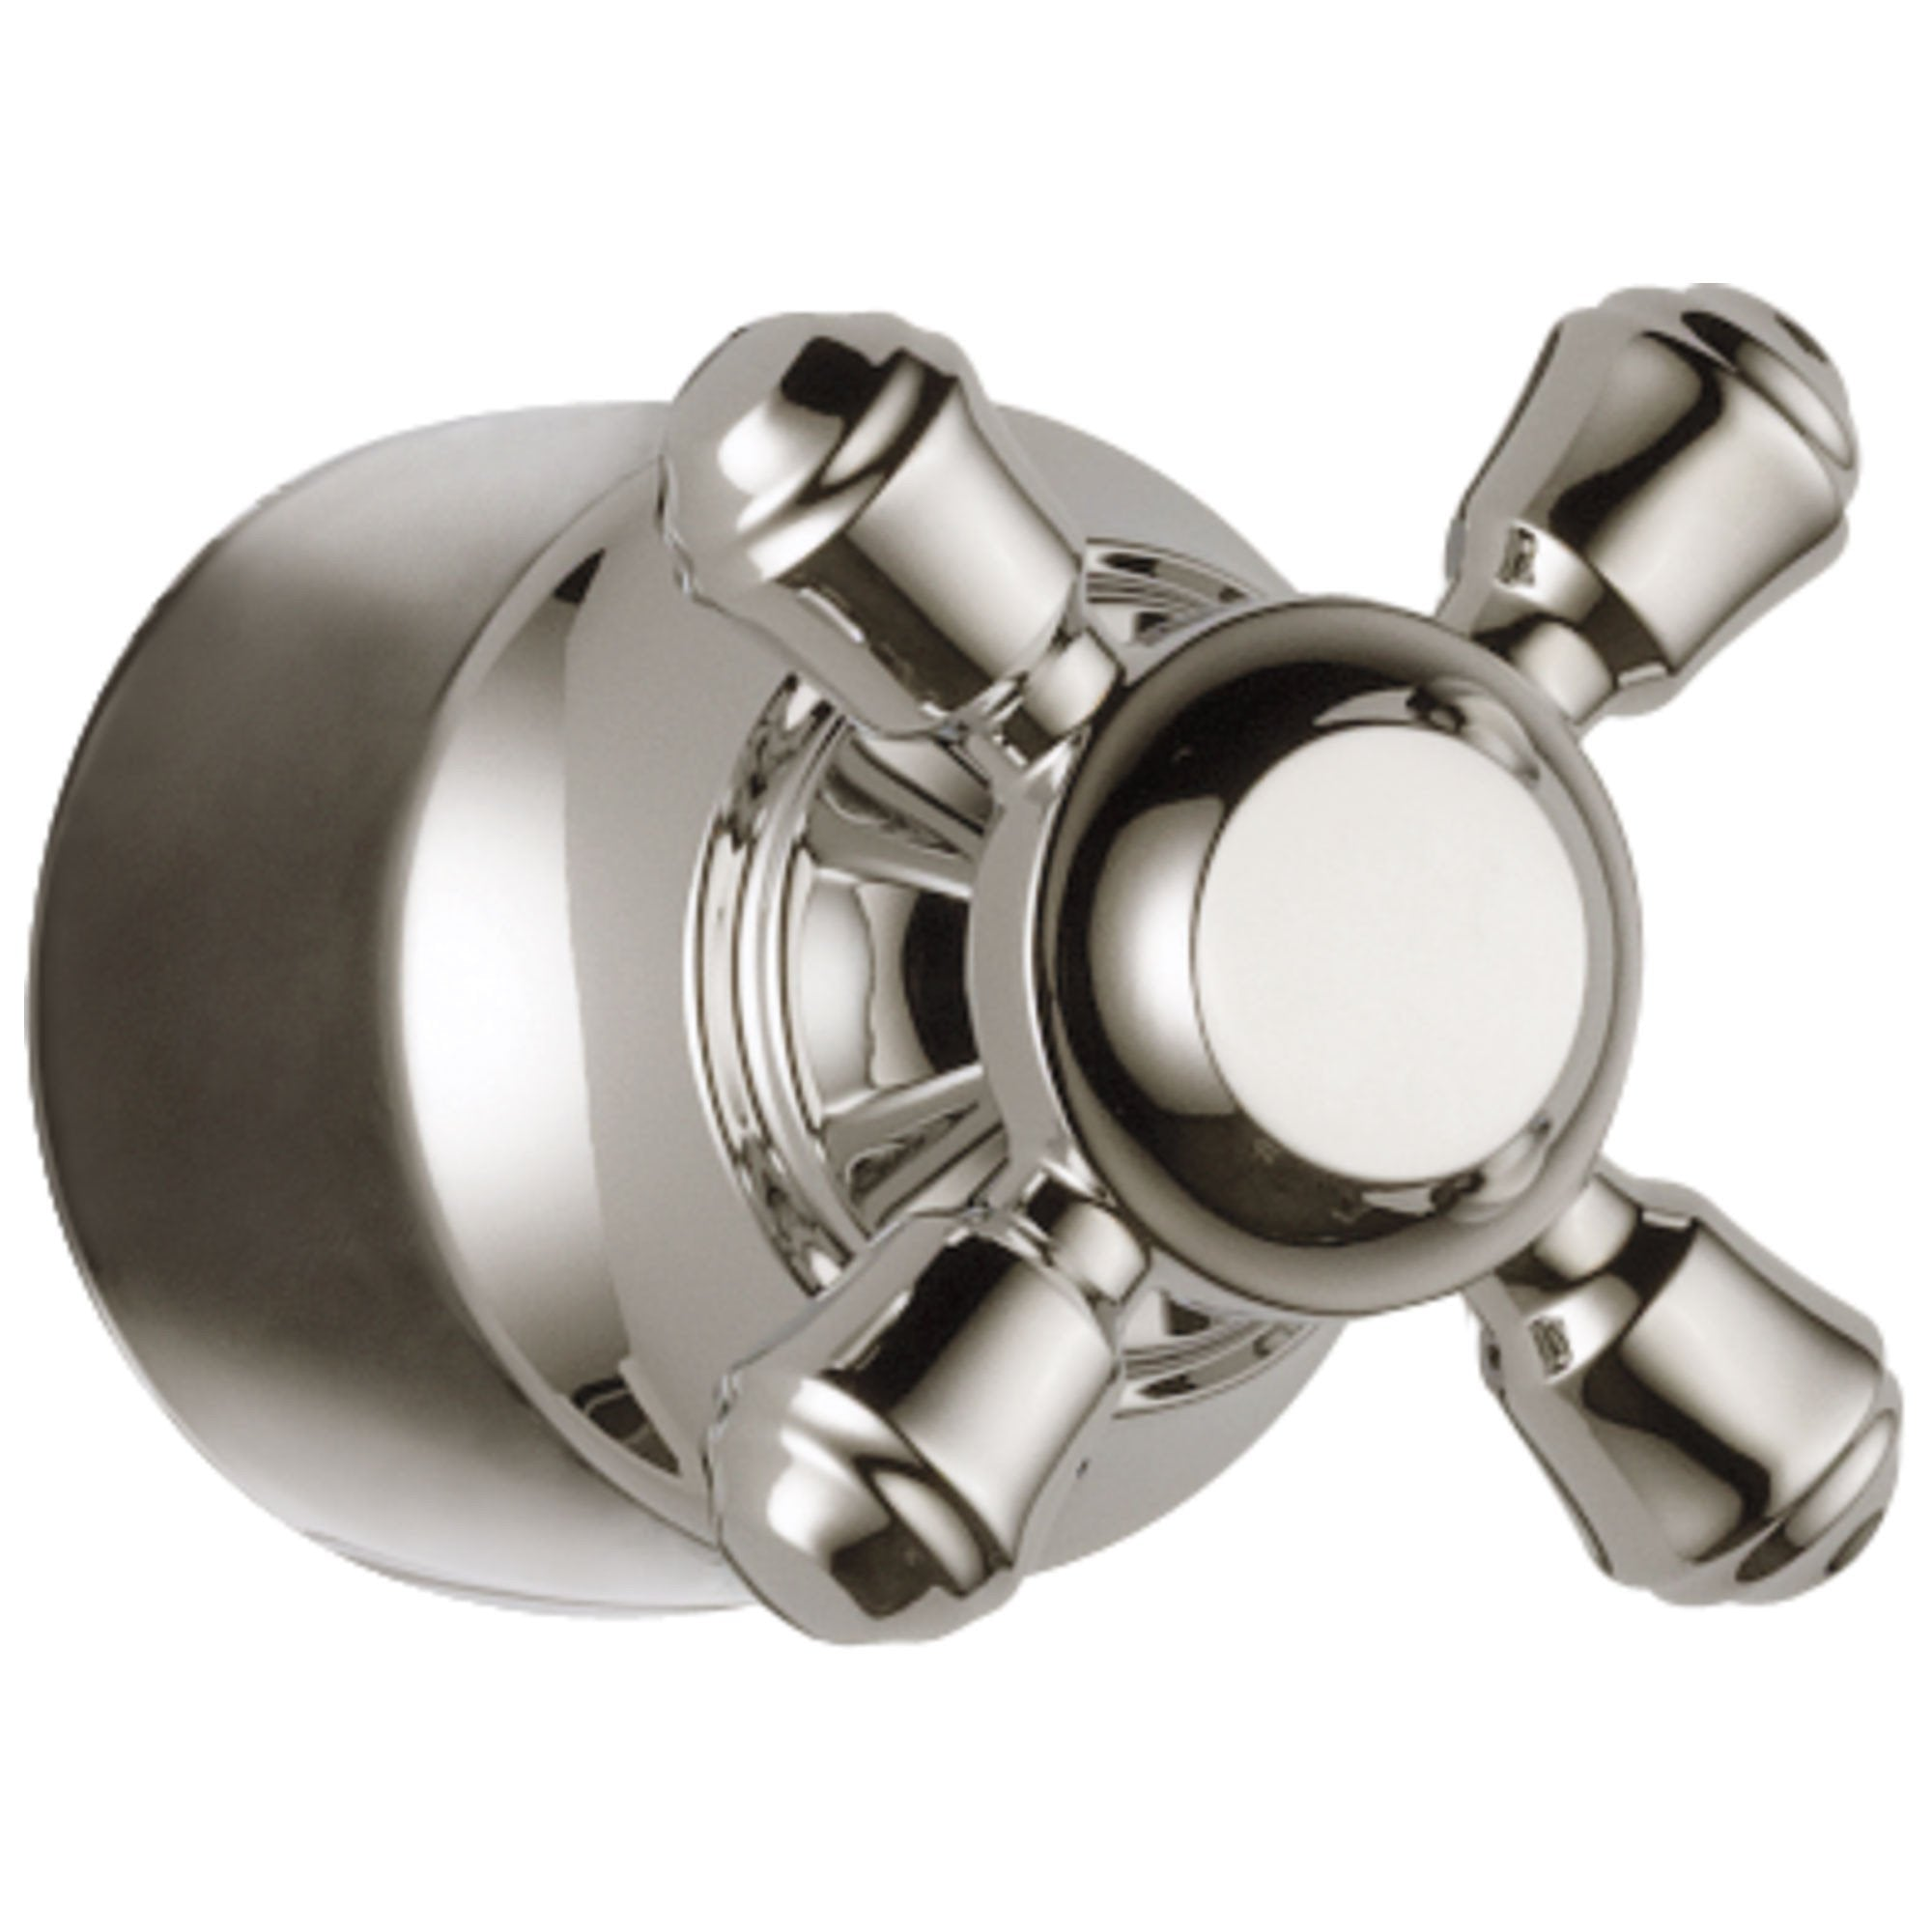 Delta Cassidy Collection Polished Nickel Finish Diverter / Transfer Valve Cross Handle - Quantity 1 Included DH595PN